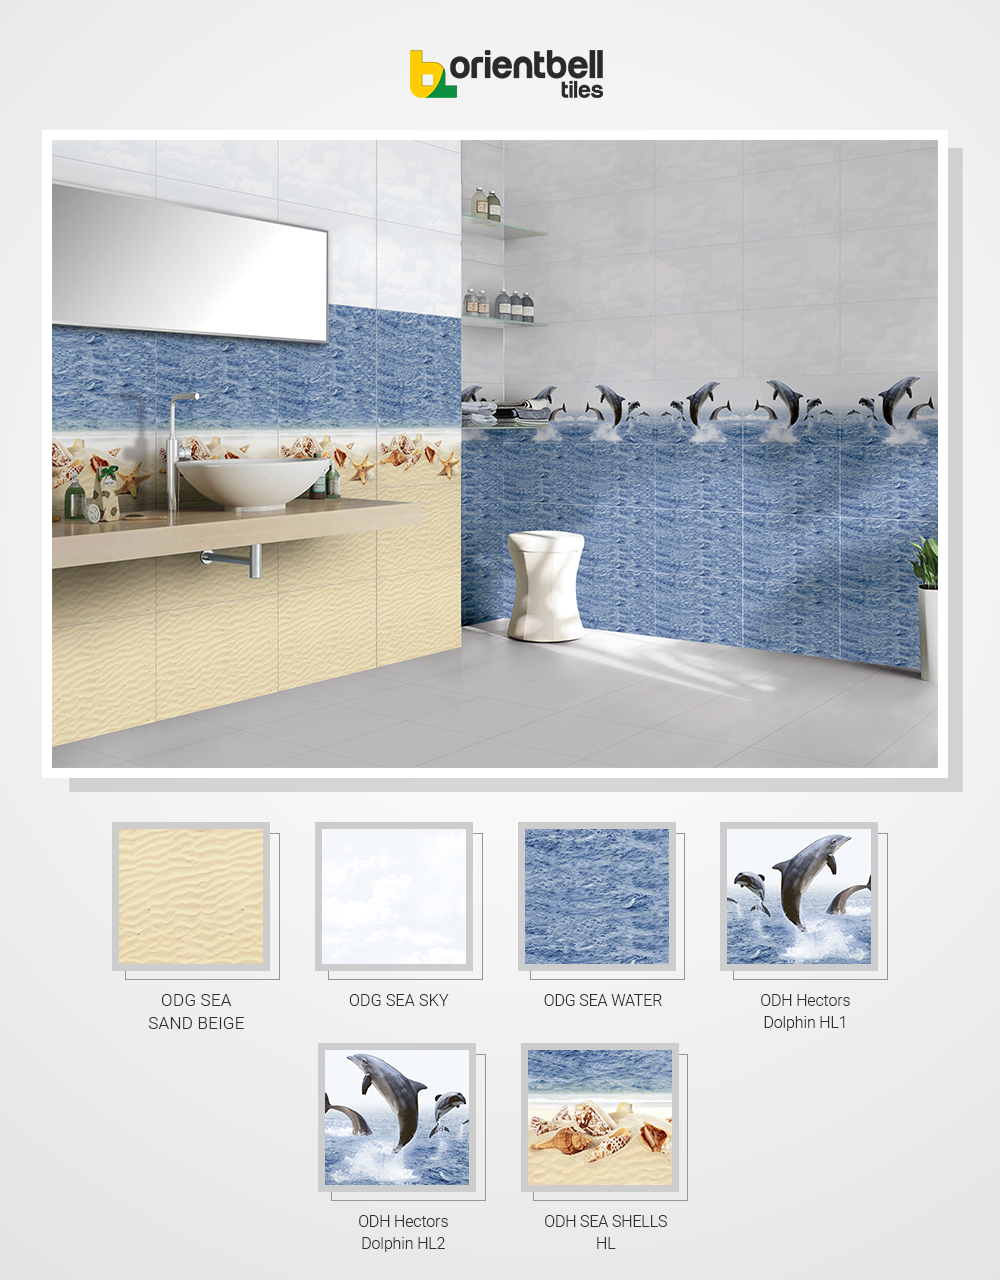 Odg Sea Sand Beige Odg Sea Sky Odg Sea Water Odh Hectors Dolphin Hl 1 Odh Hectors Dolphin Hl 2 And Odh Sea Shells Hl Tile Bathroom Sand Beige Buy Tile